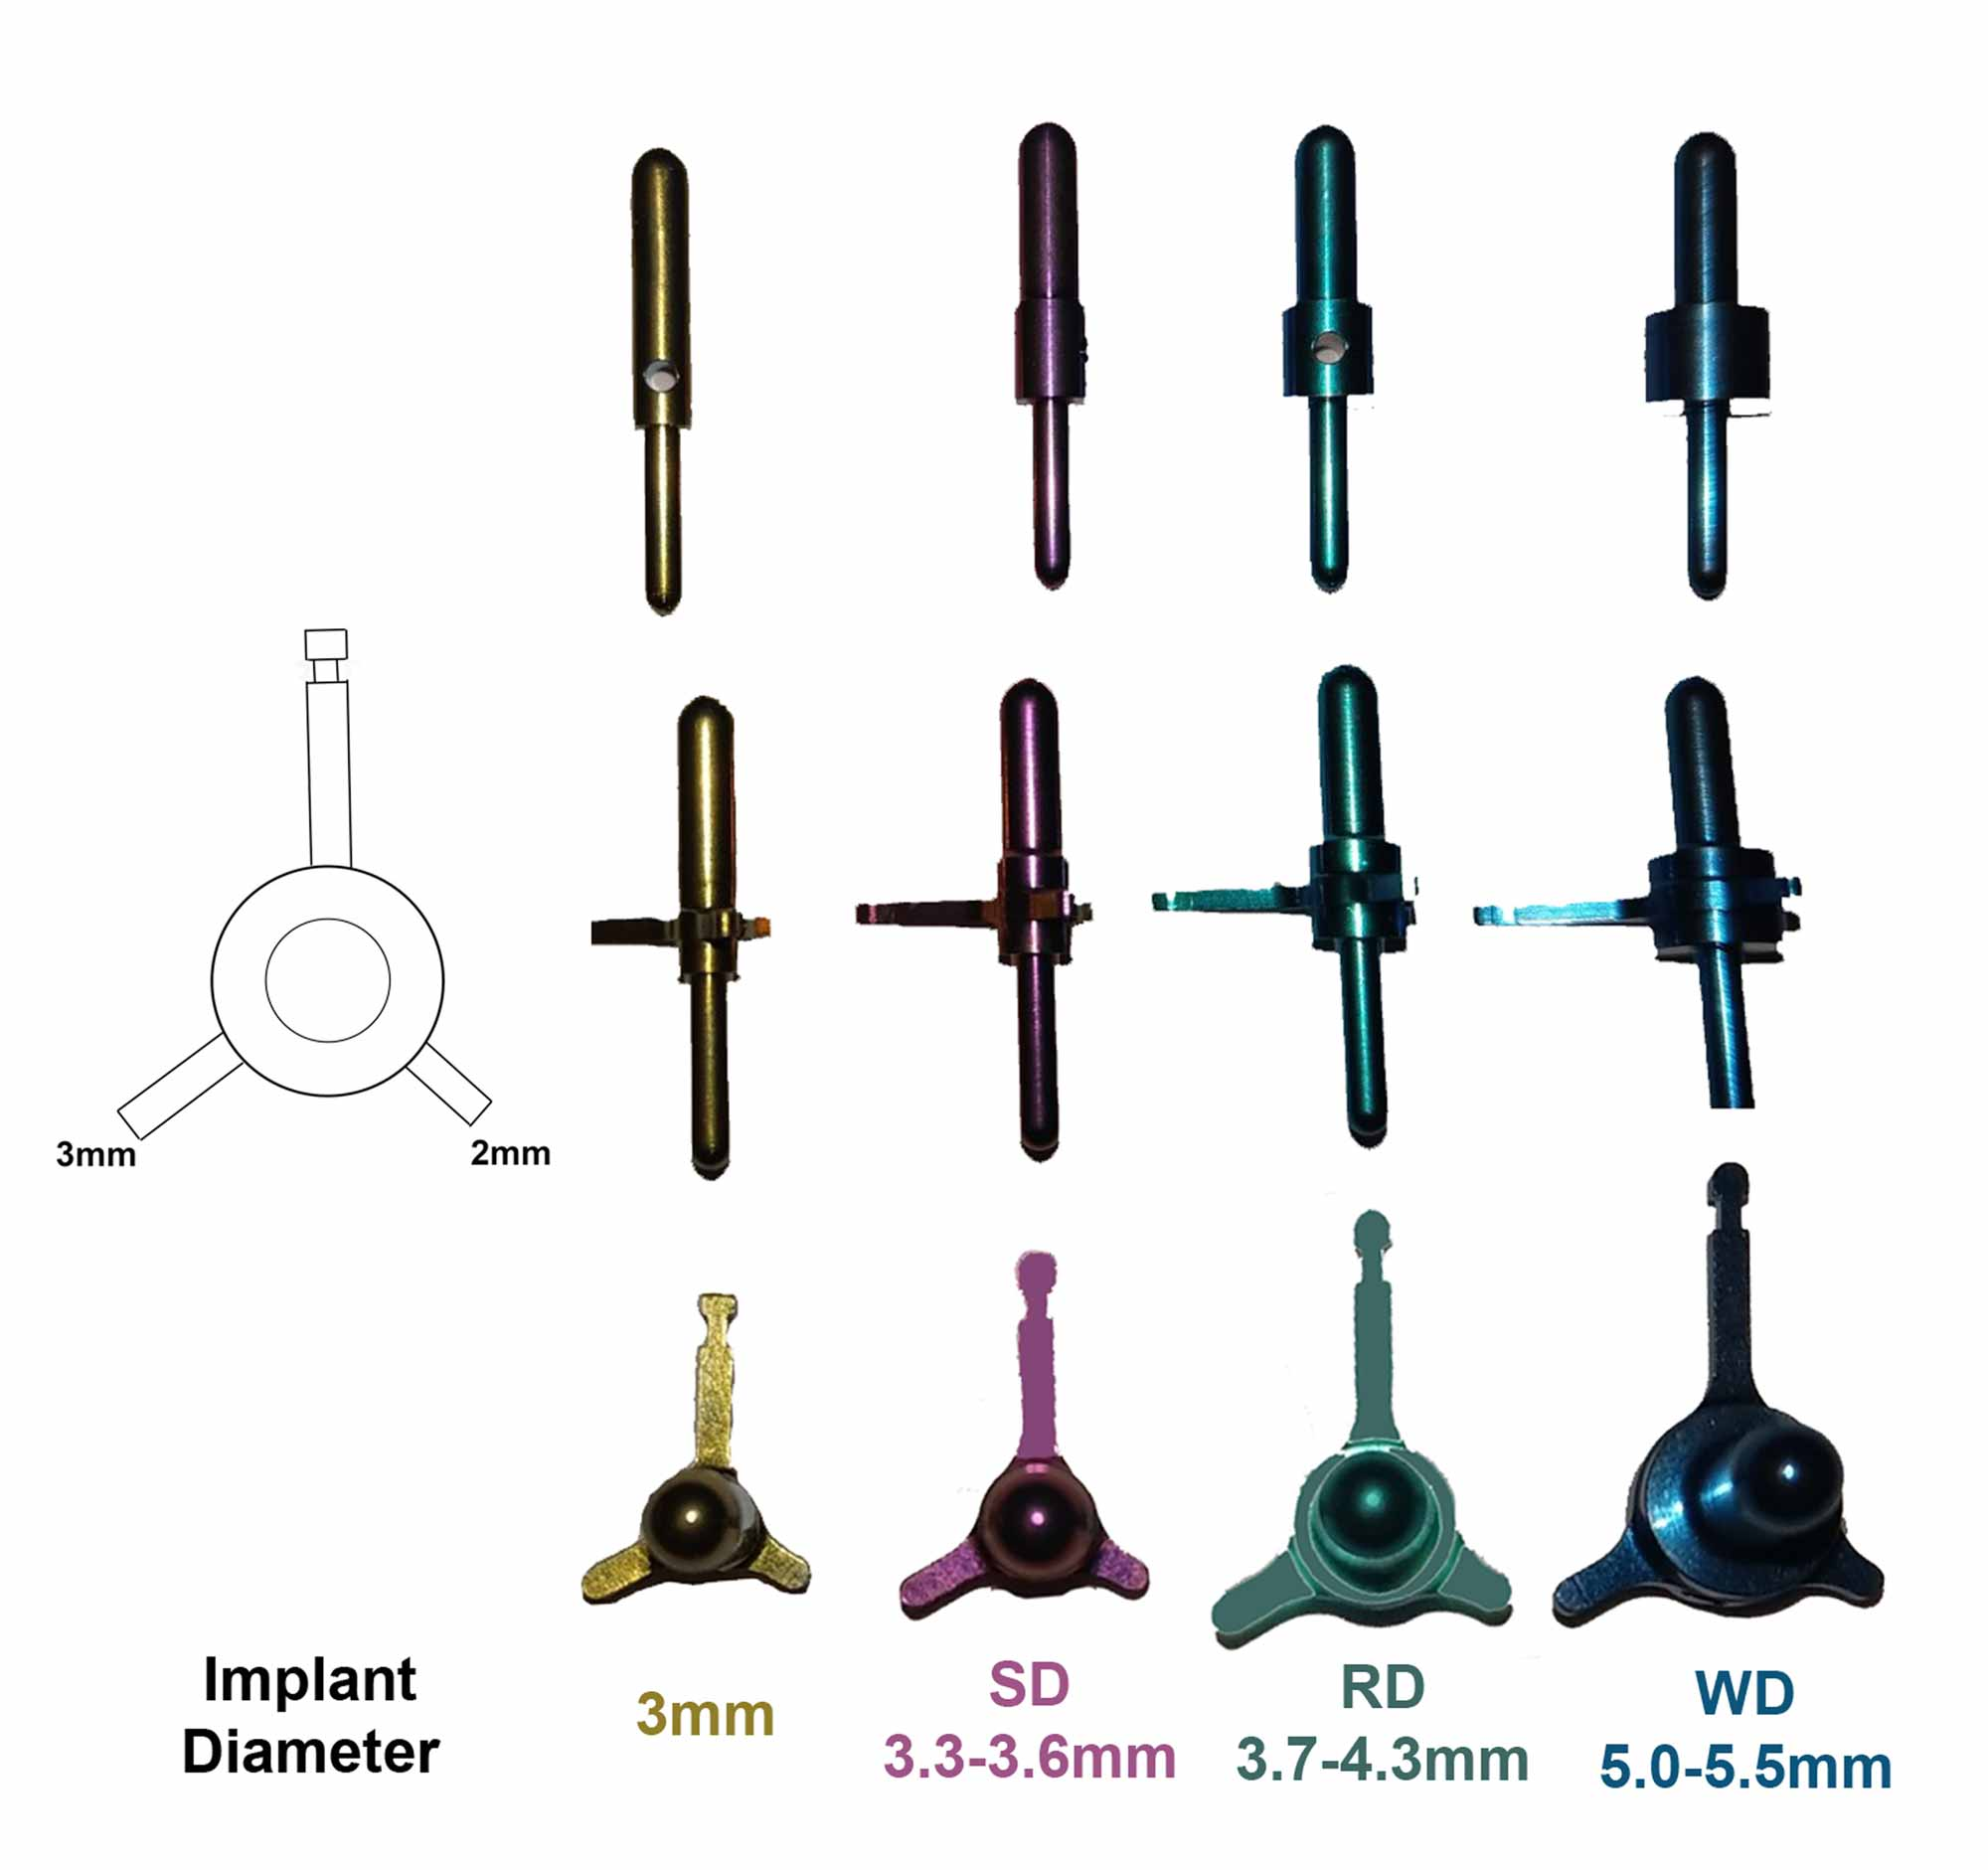 IVIS Implant Guidance System guide pins wingless